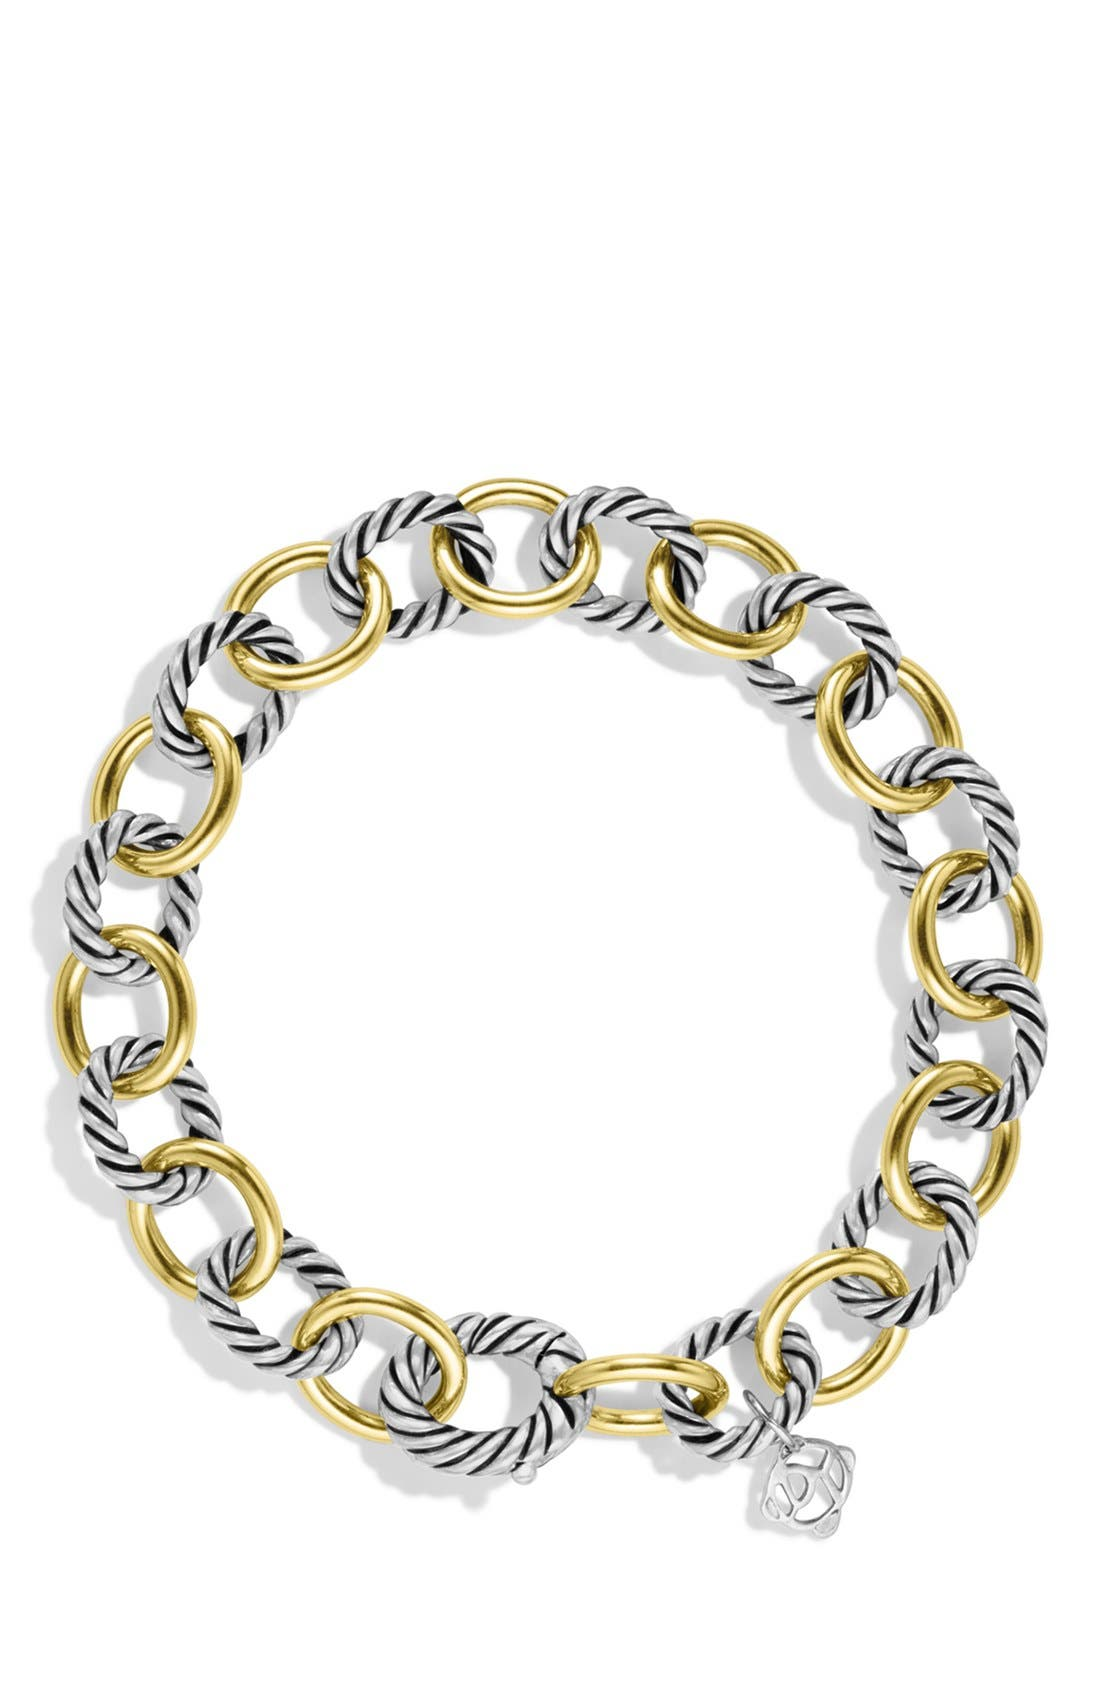 'Oval' Link Bracelet with Gold,                             Alternate thumbnail 2, color,                             Two Tone